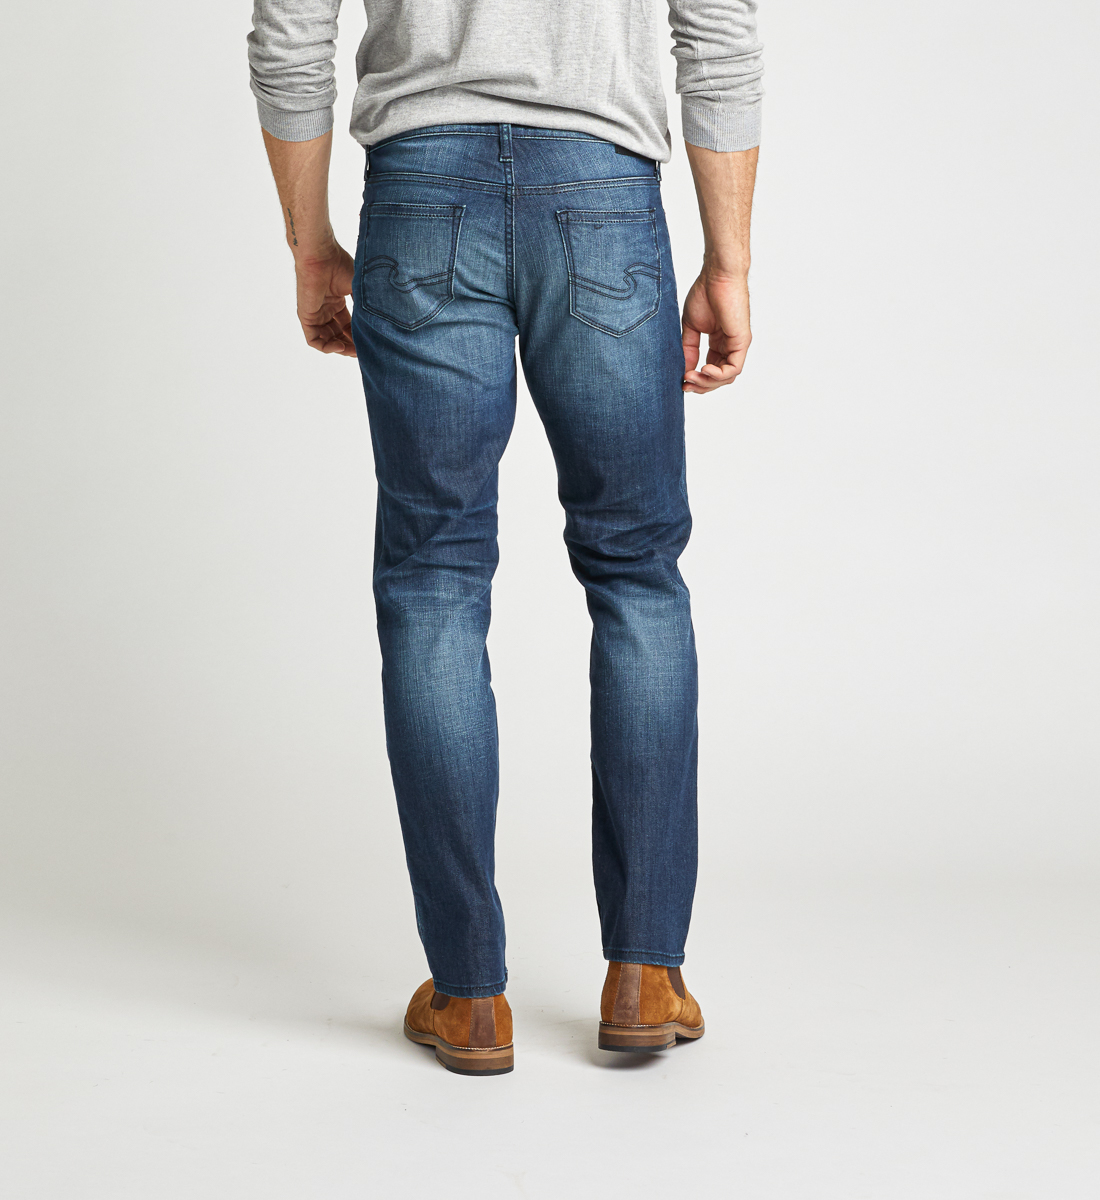 Konrad Slim Fit Slim Leg Jeans Back